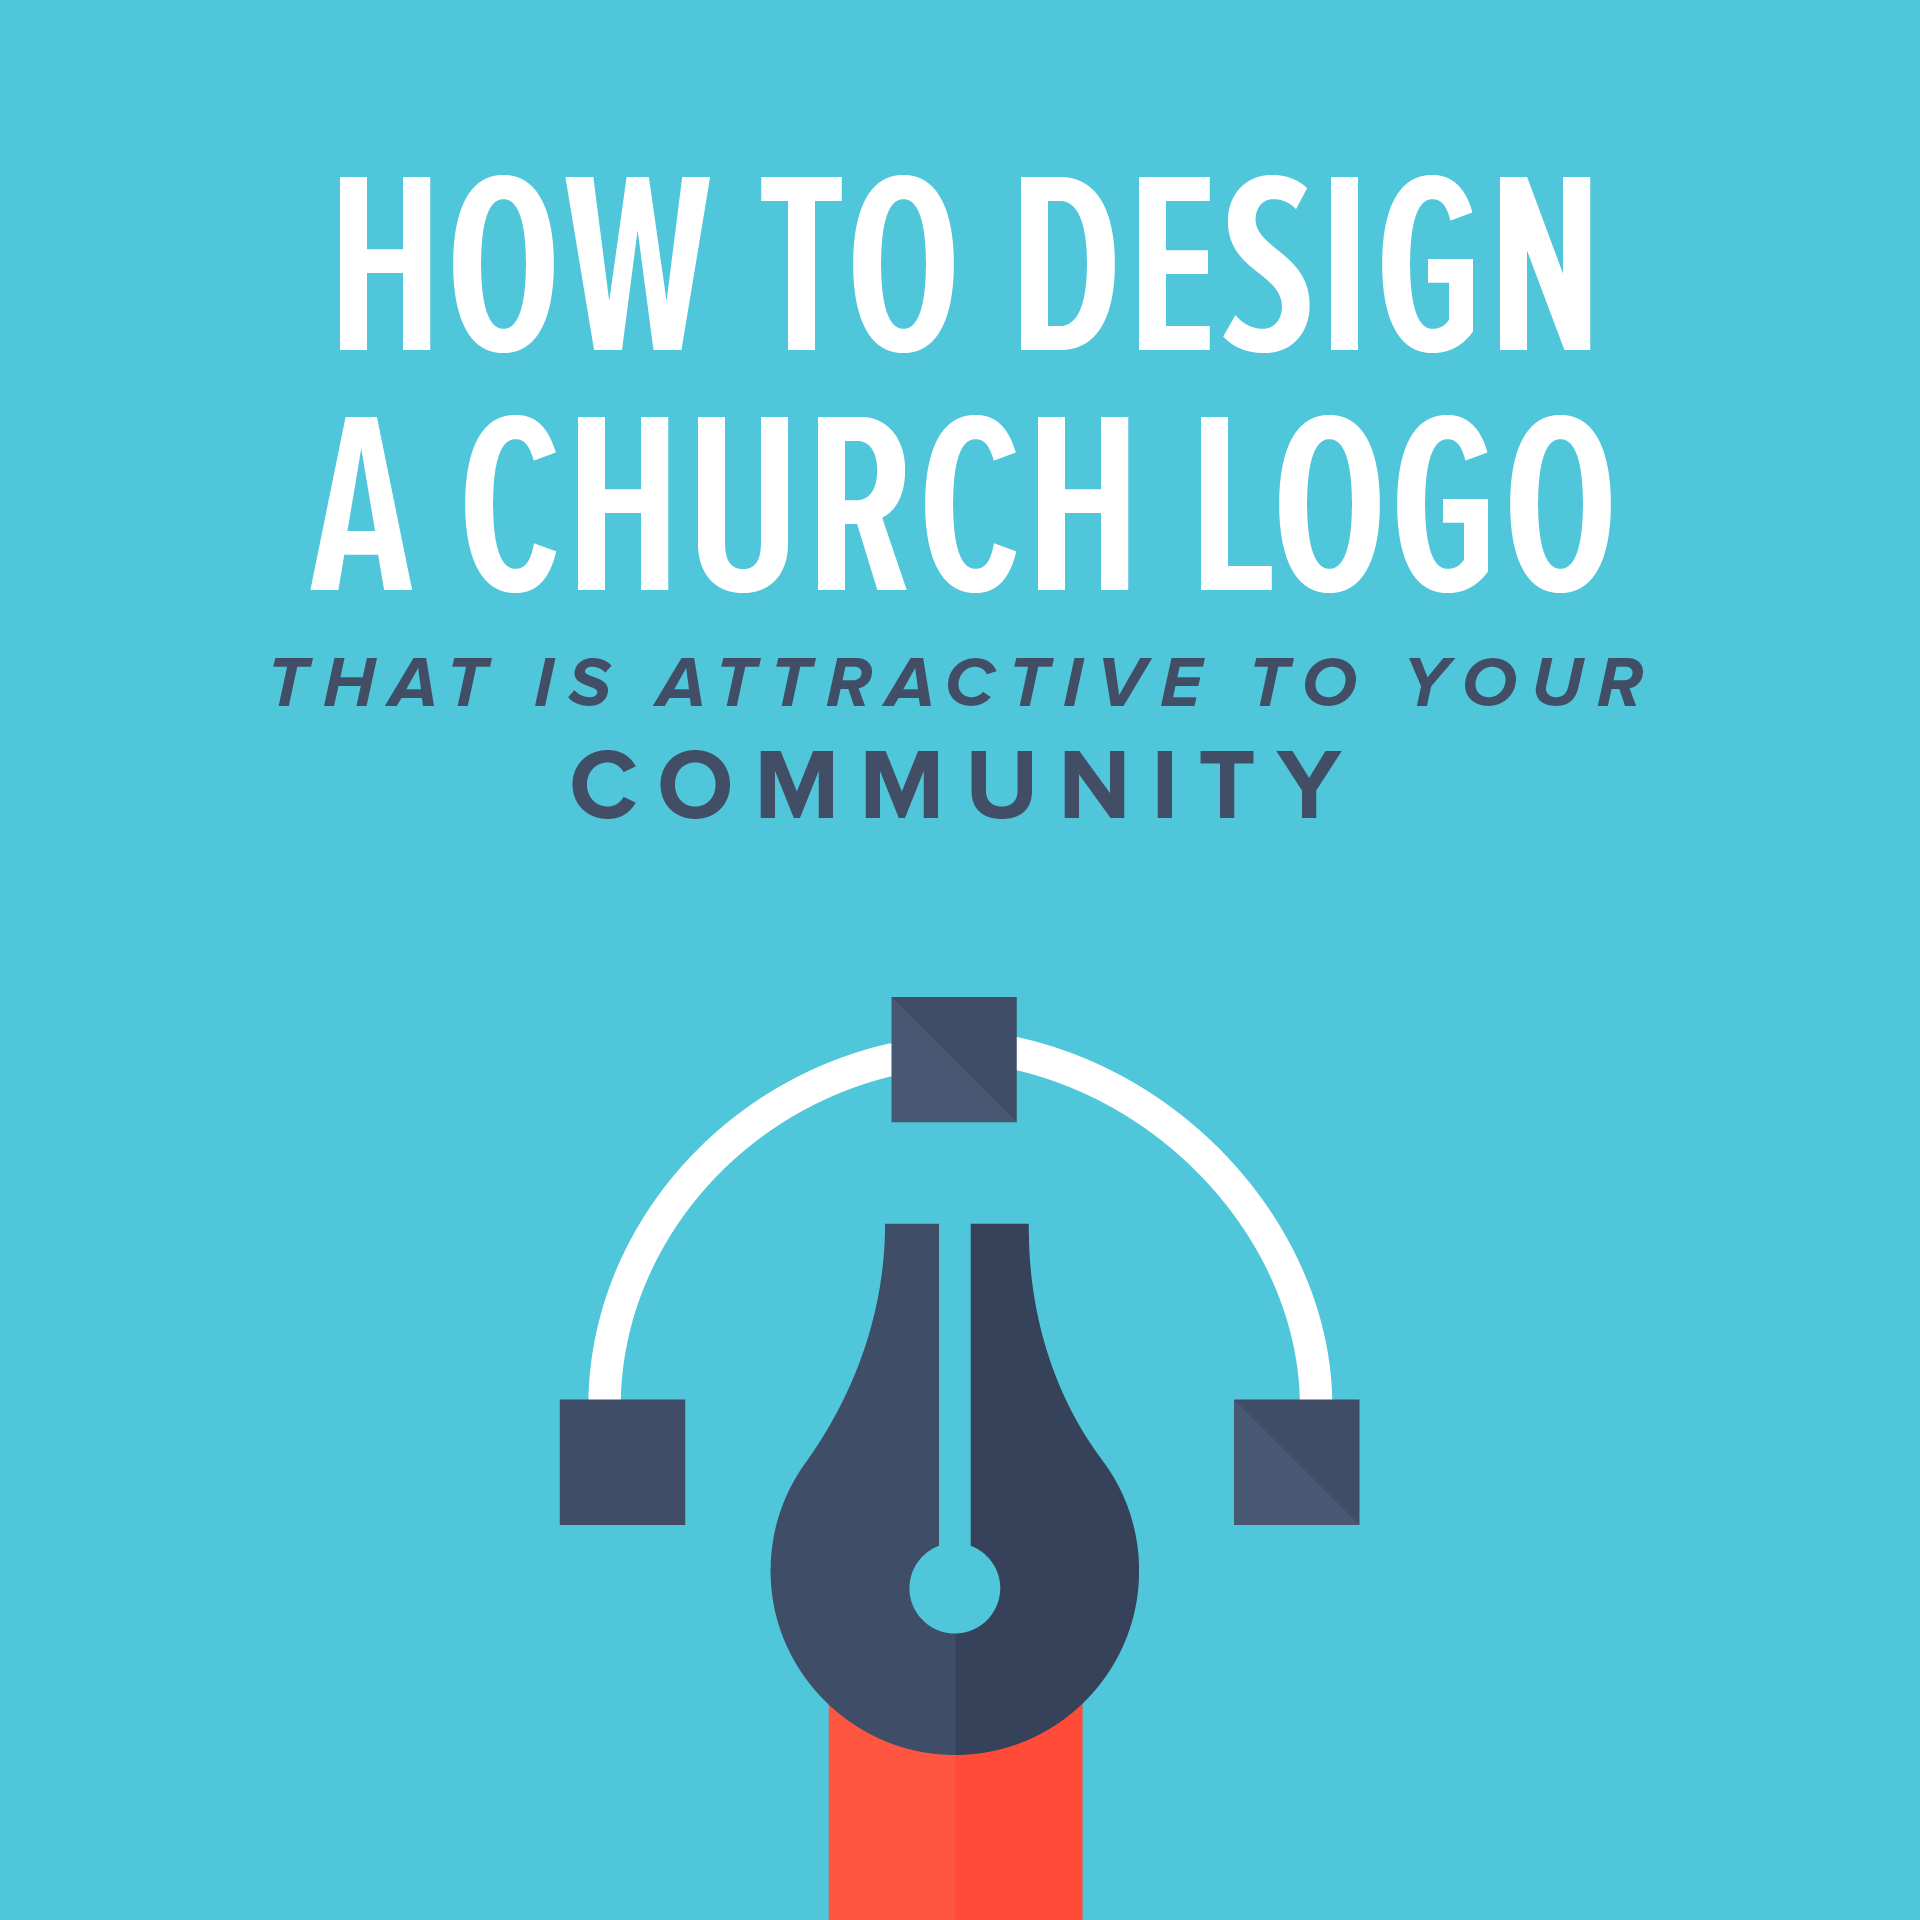 How to design a church logo